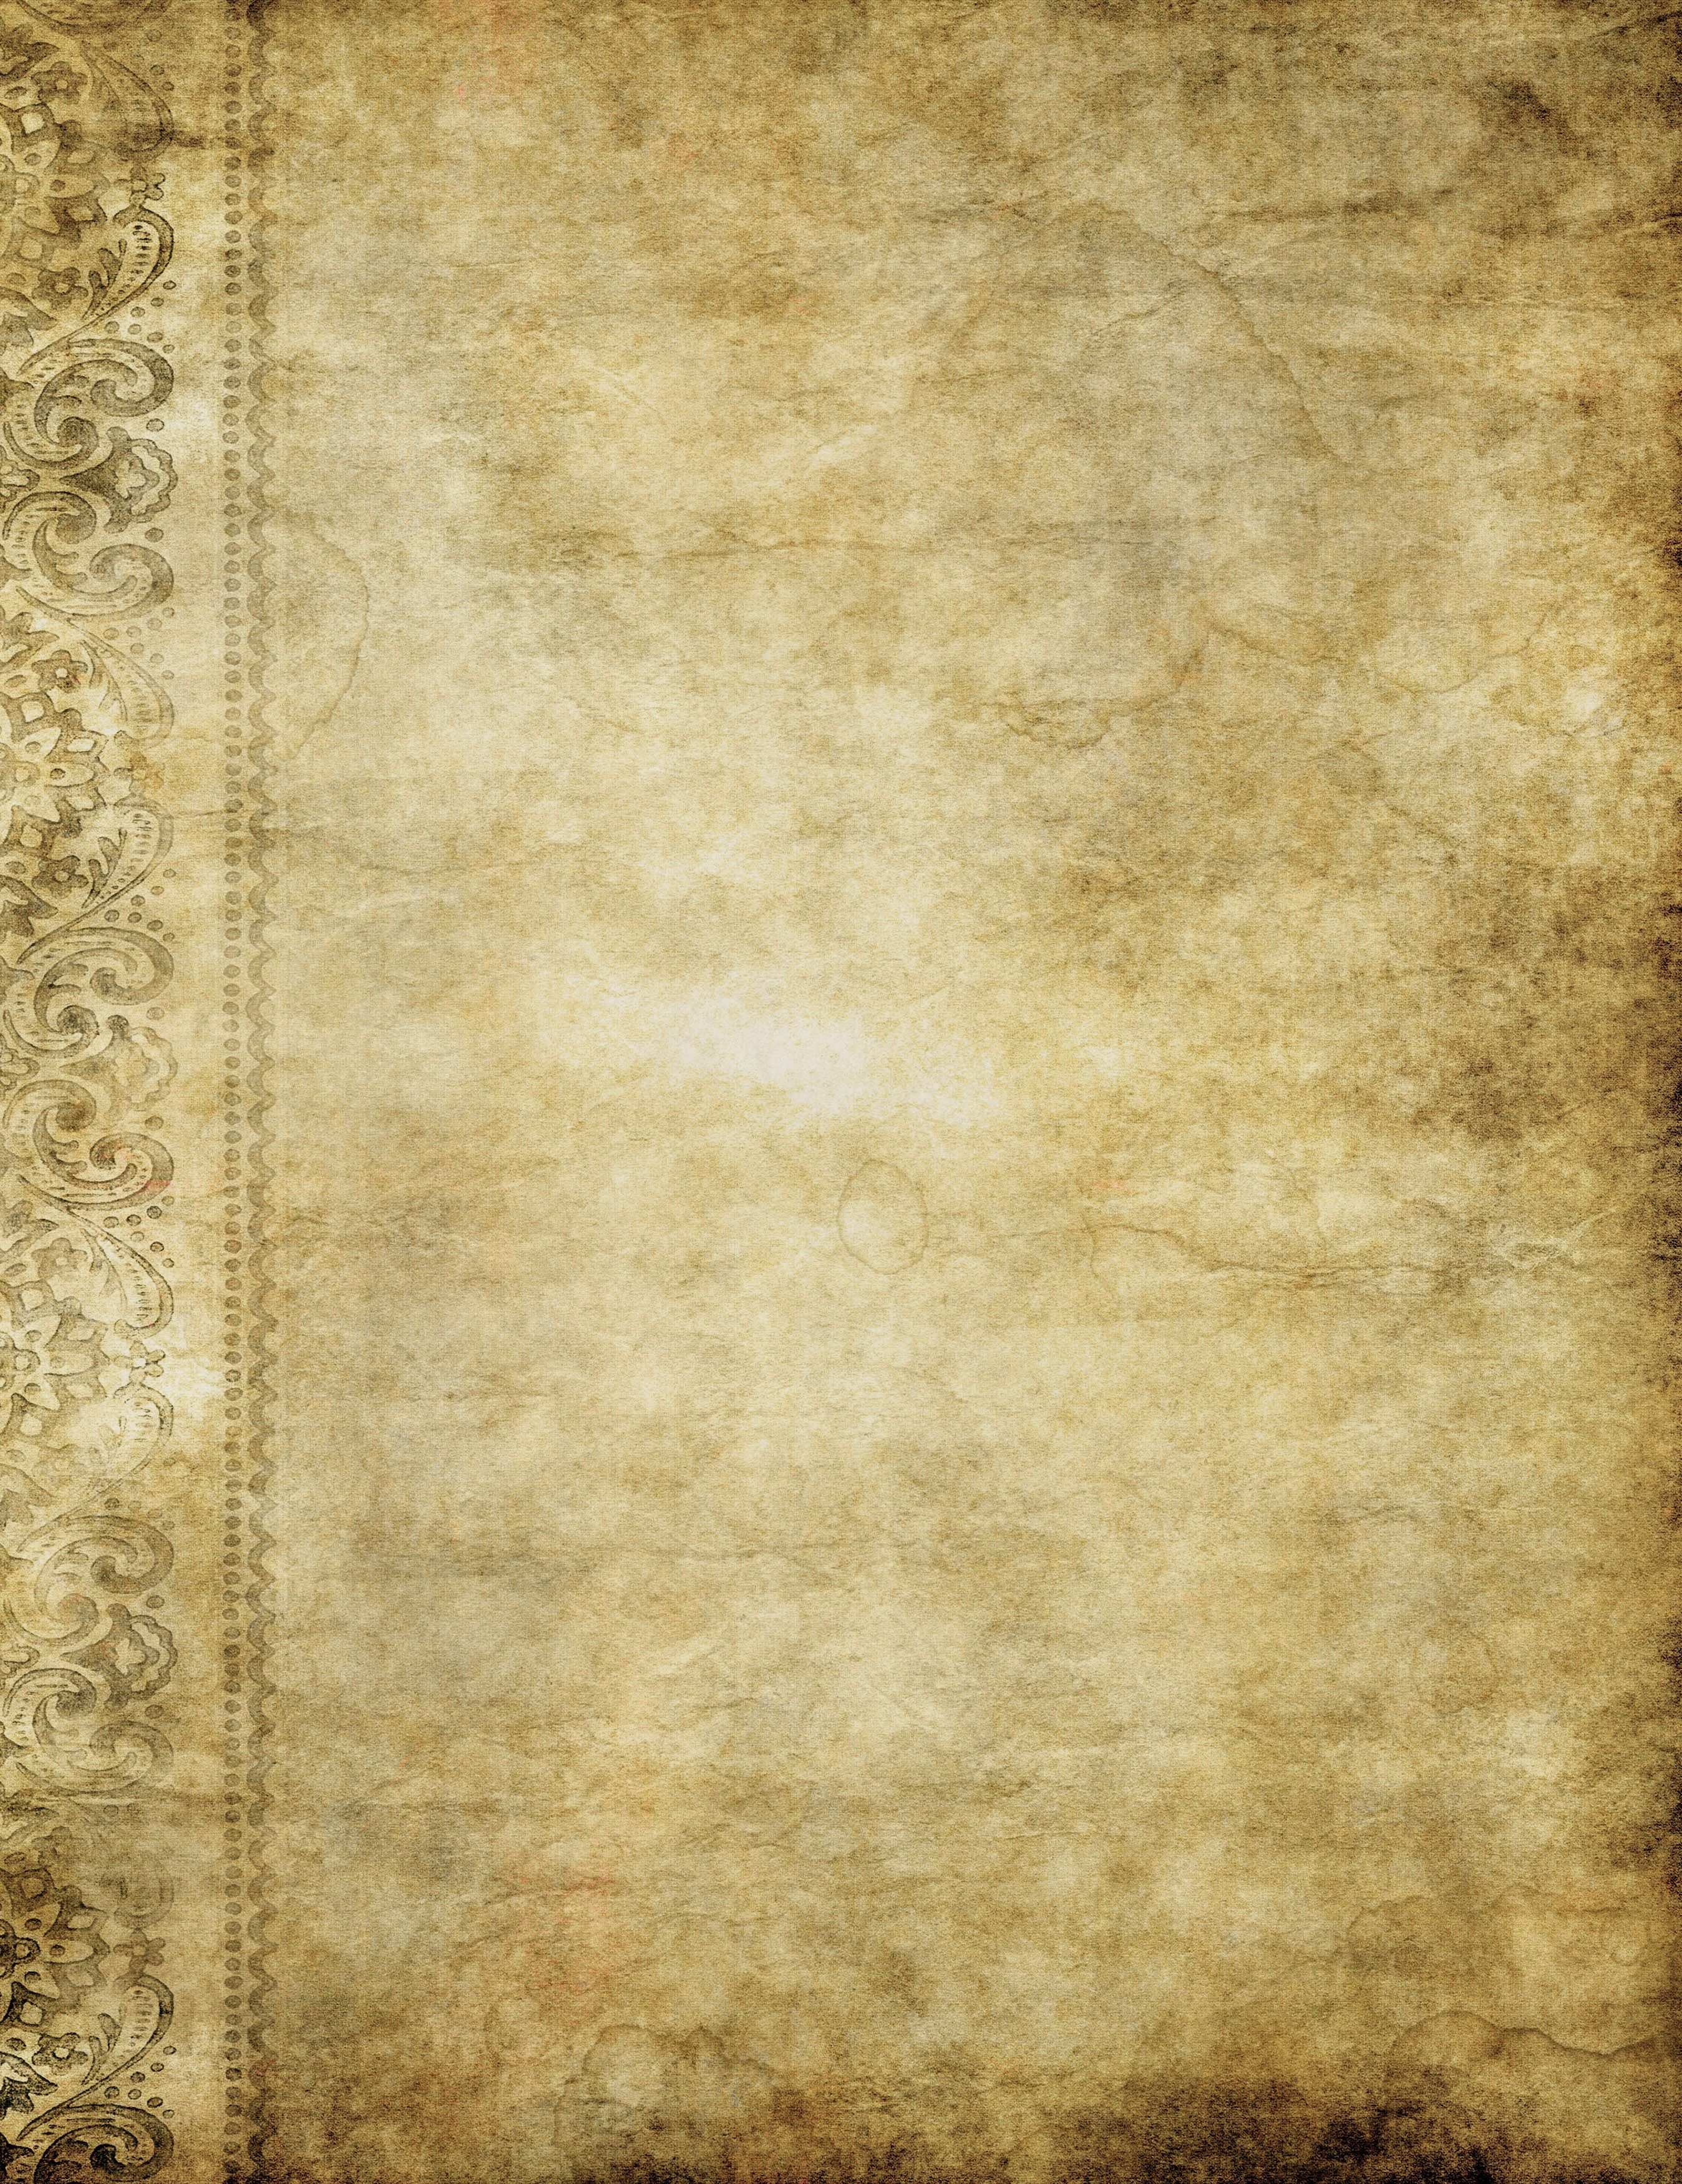 Another Old Grunge Paper Or Parchment Background Image Grunge